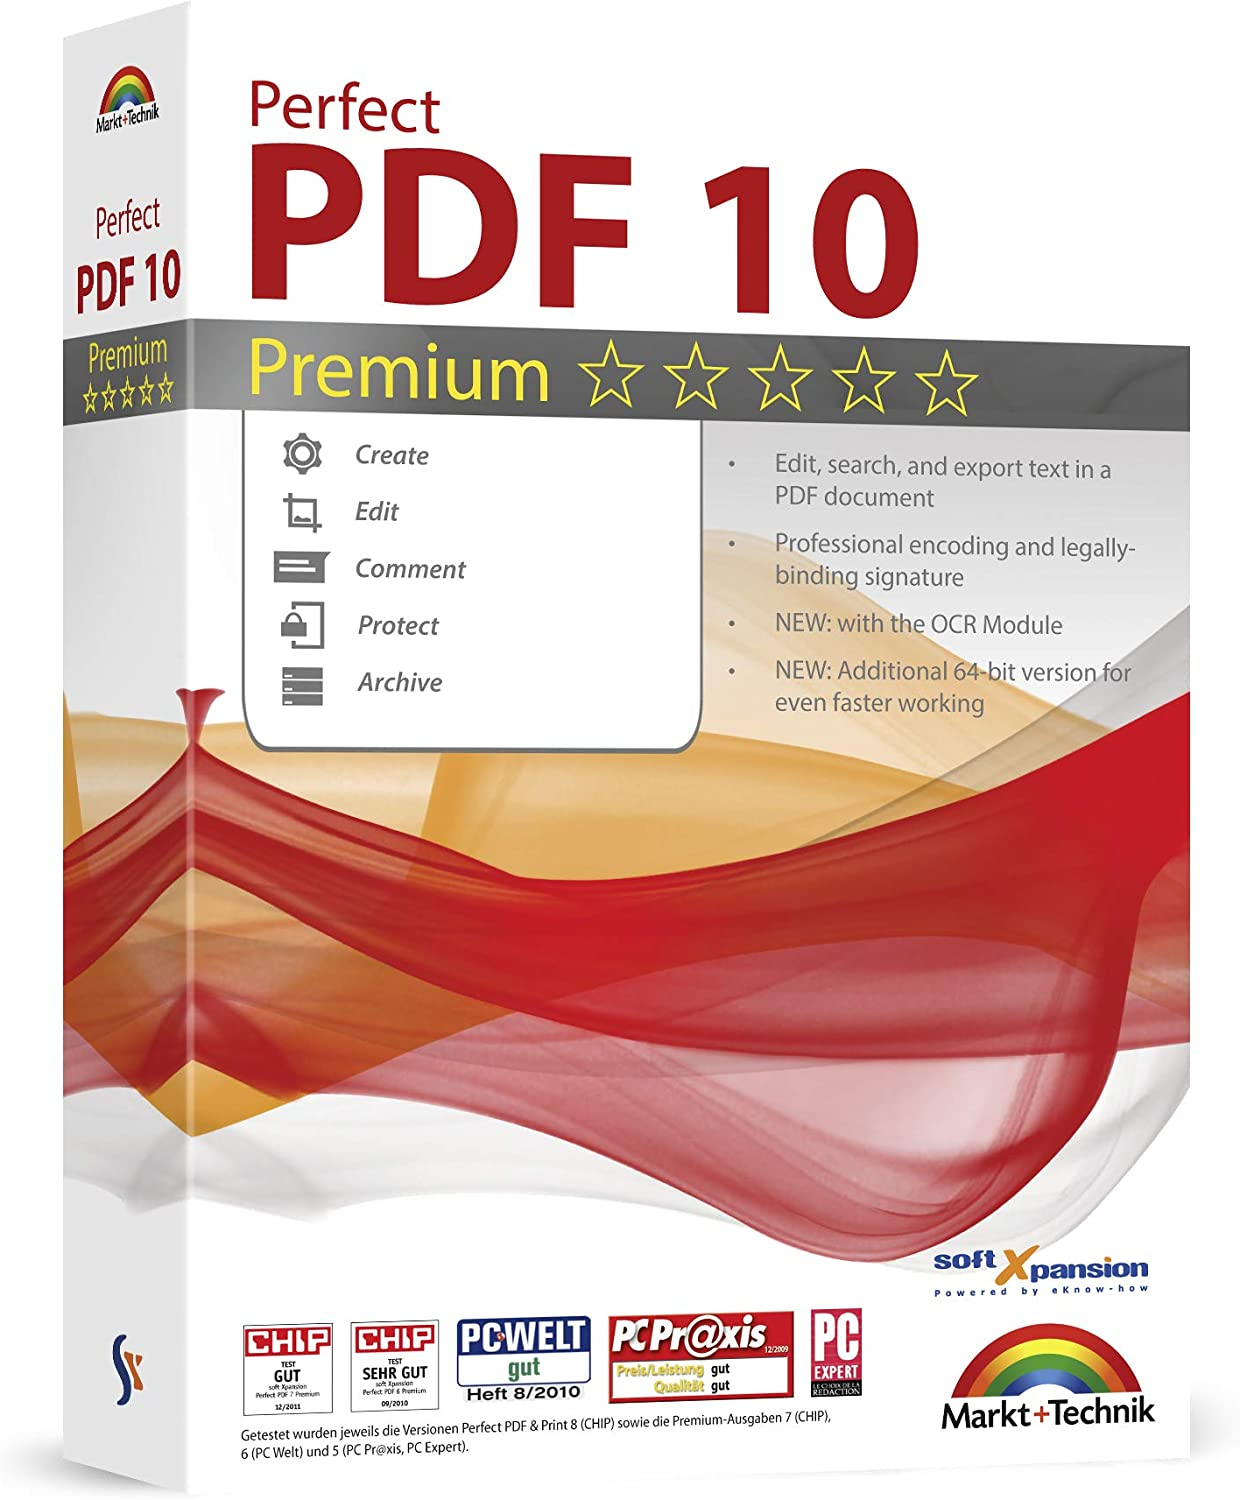 Perfect PDF 10 Premium - Powerful PDF Editing Software - 100% Compatible with Adobe Acrobat - Create, Edit, Convert, Protect, Add Comments, Insert Digital Signatures, OCR Recognition 717n8hVpLBL